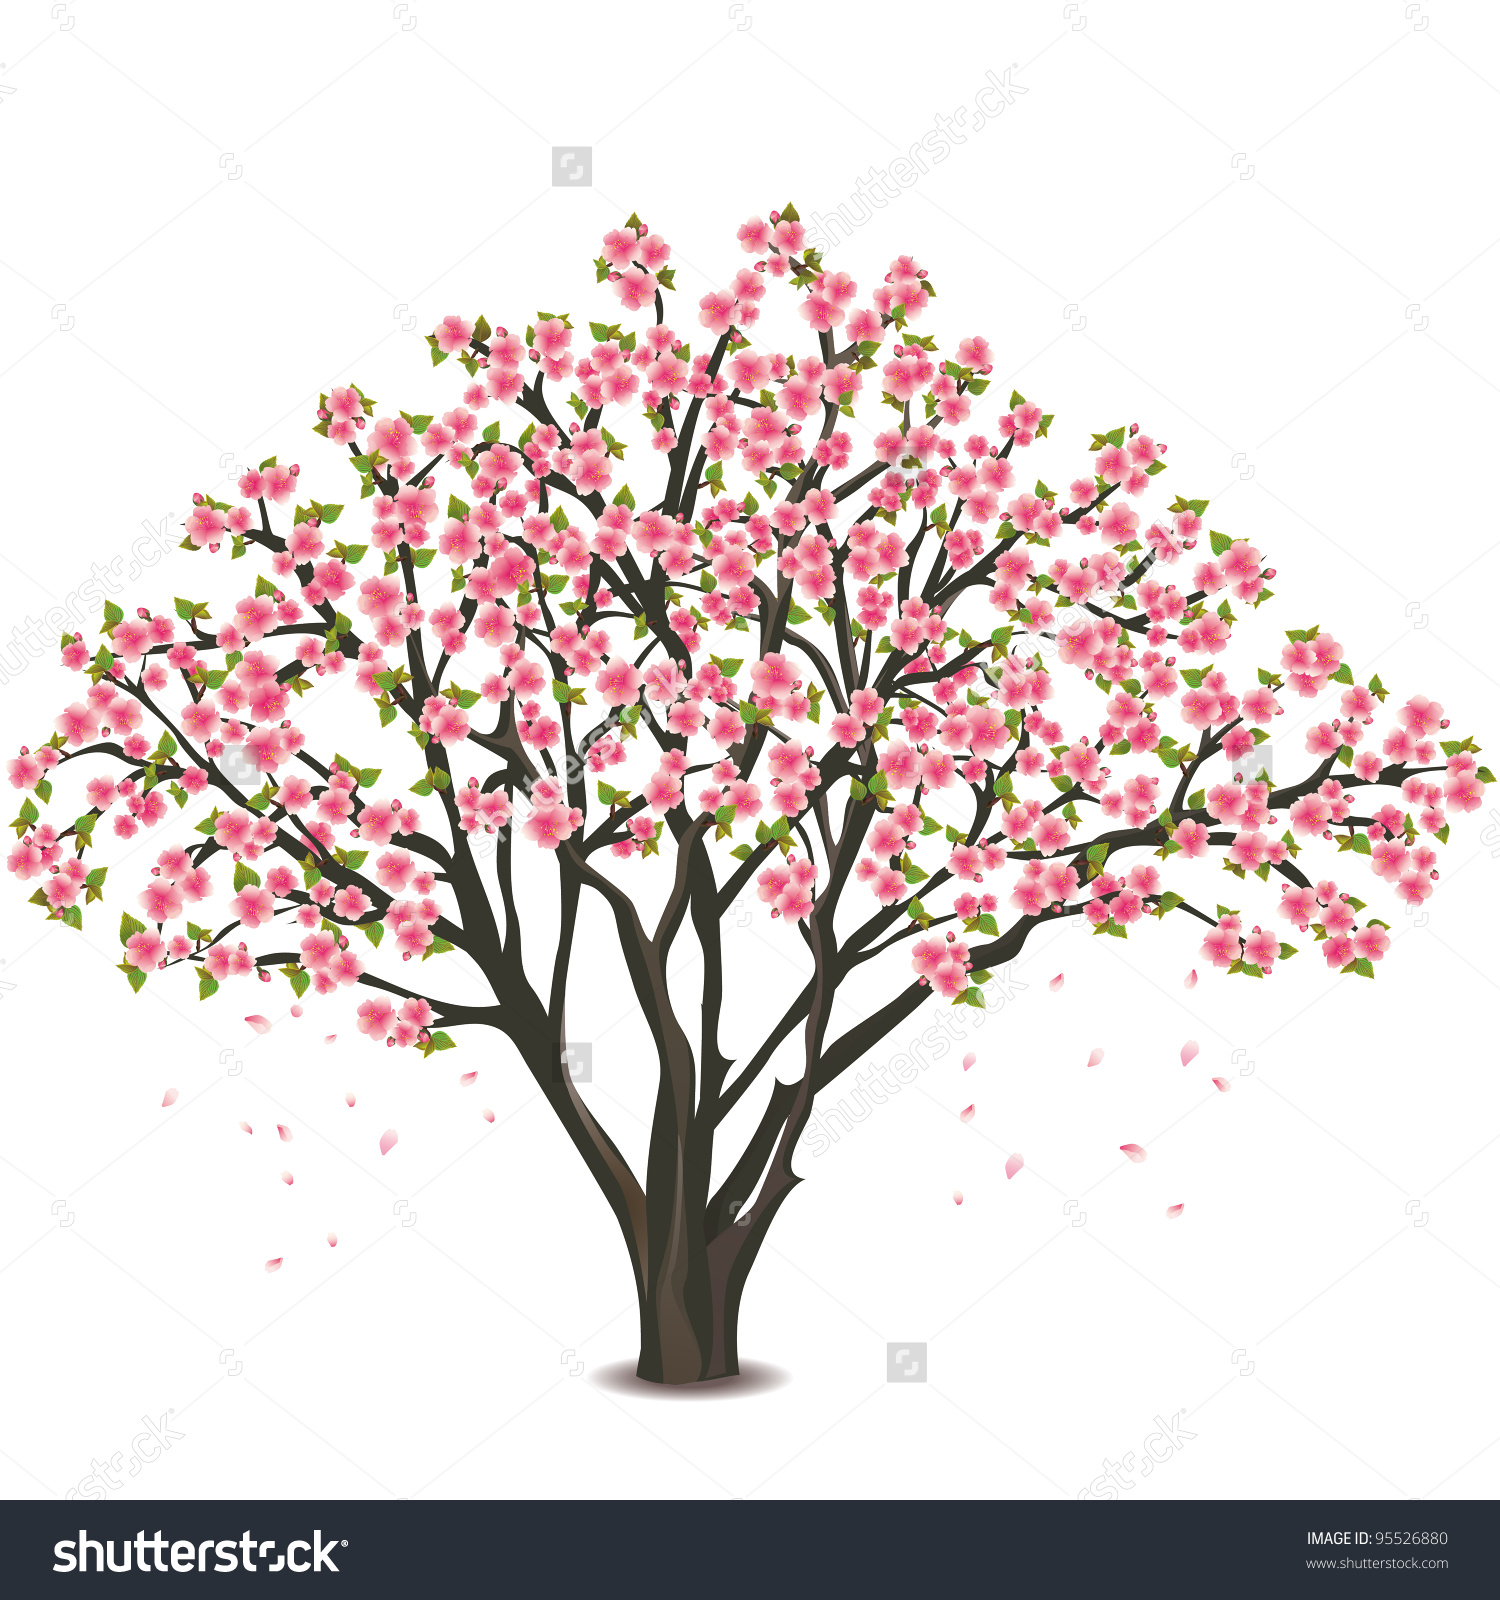 Cherry Blossom Tree Black And White: Blossomed Clipart